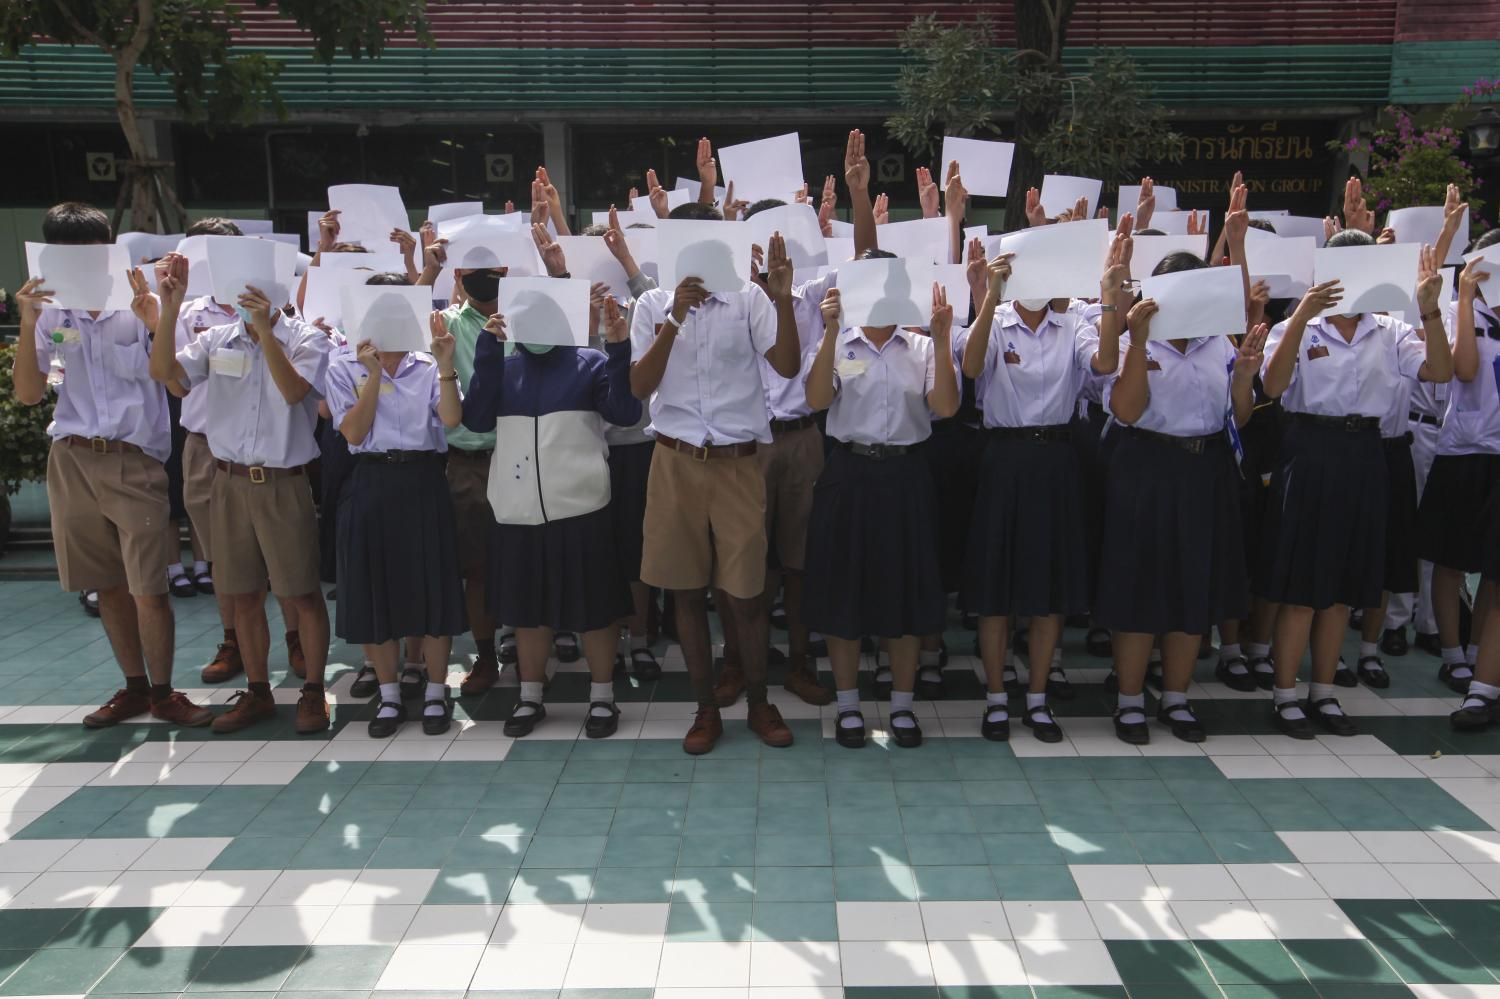 Students from several schools in and outside of Bangkok give the three-fingered salute in a symbolic protest against the government. Some also tied white ribbons to their bags to show their opposition. The Education Ministry has allowed the students to express their political views on school premises. (Photos by Samut Kongwarakom, Arnun Chonmahatrakool and the internal security operations command)